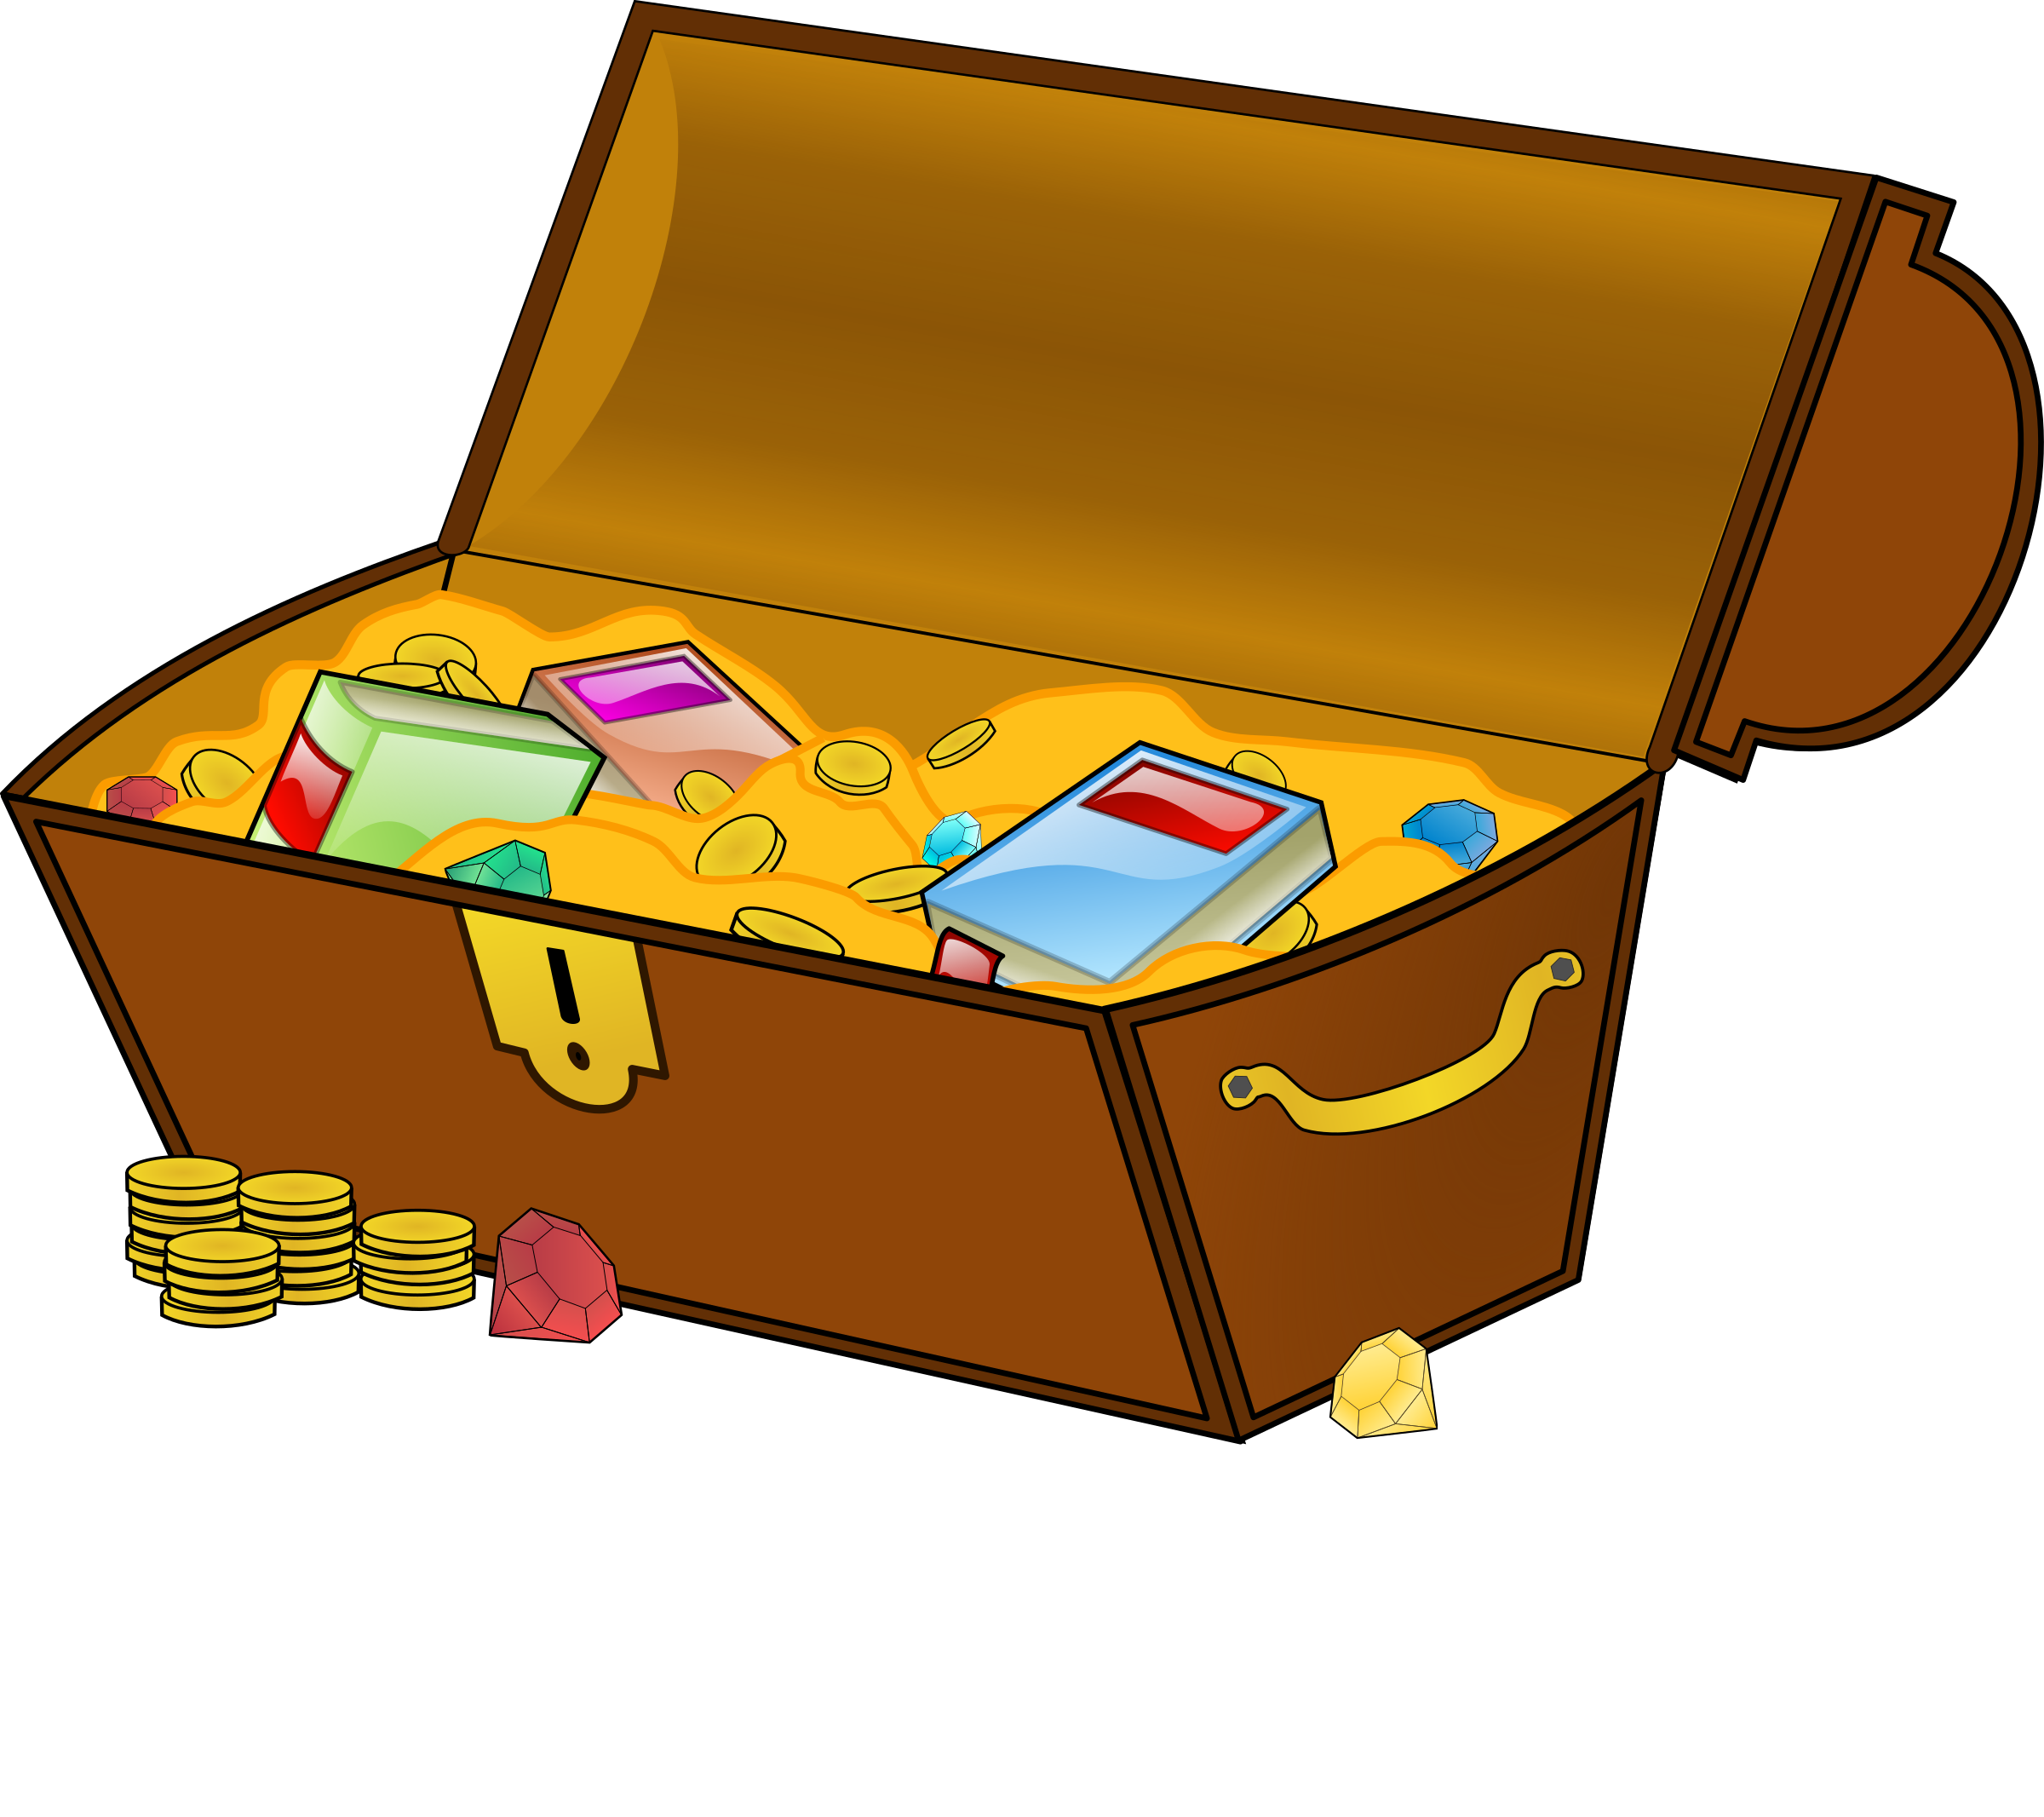 image library stock Treasure chest big image. Book clipart knowledge